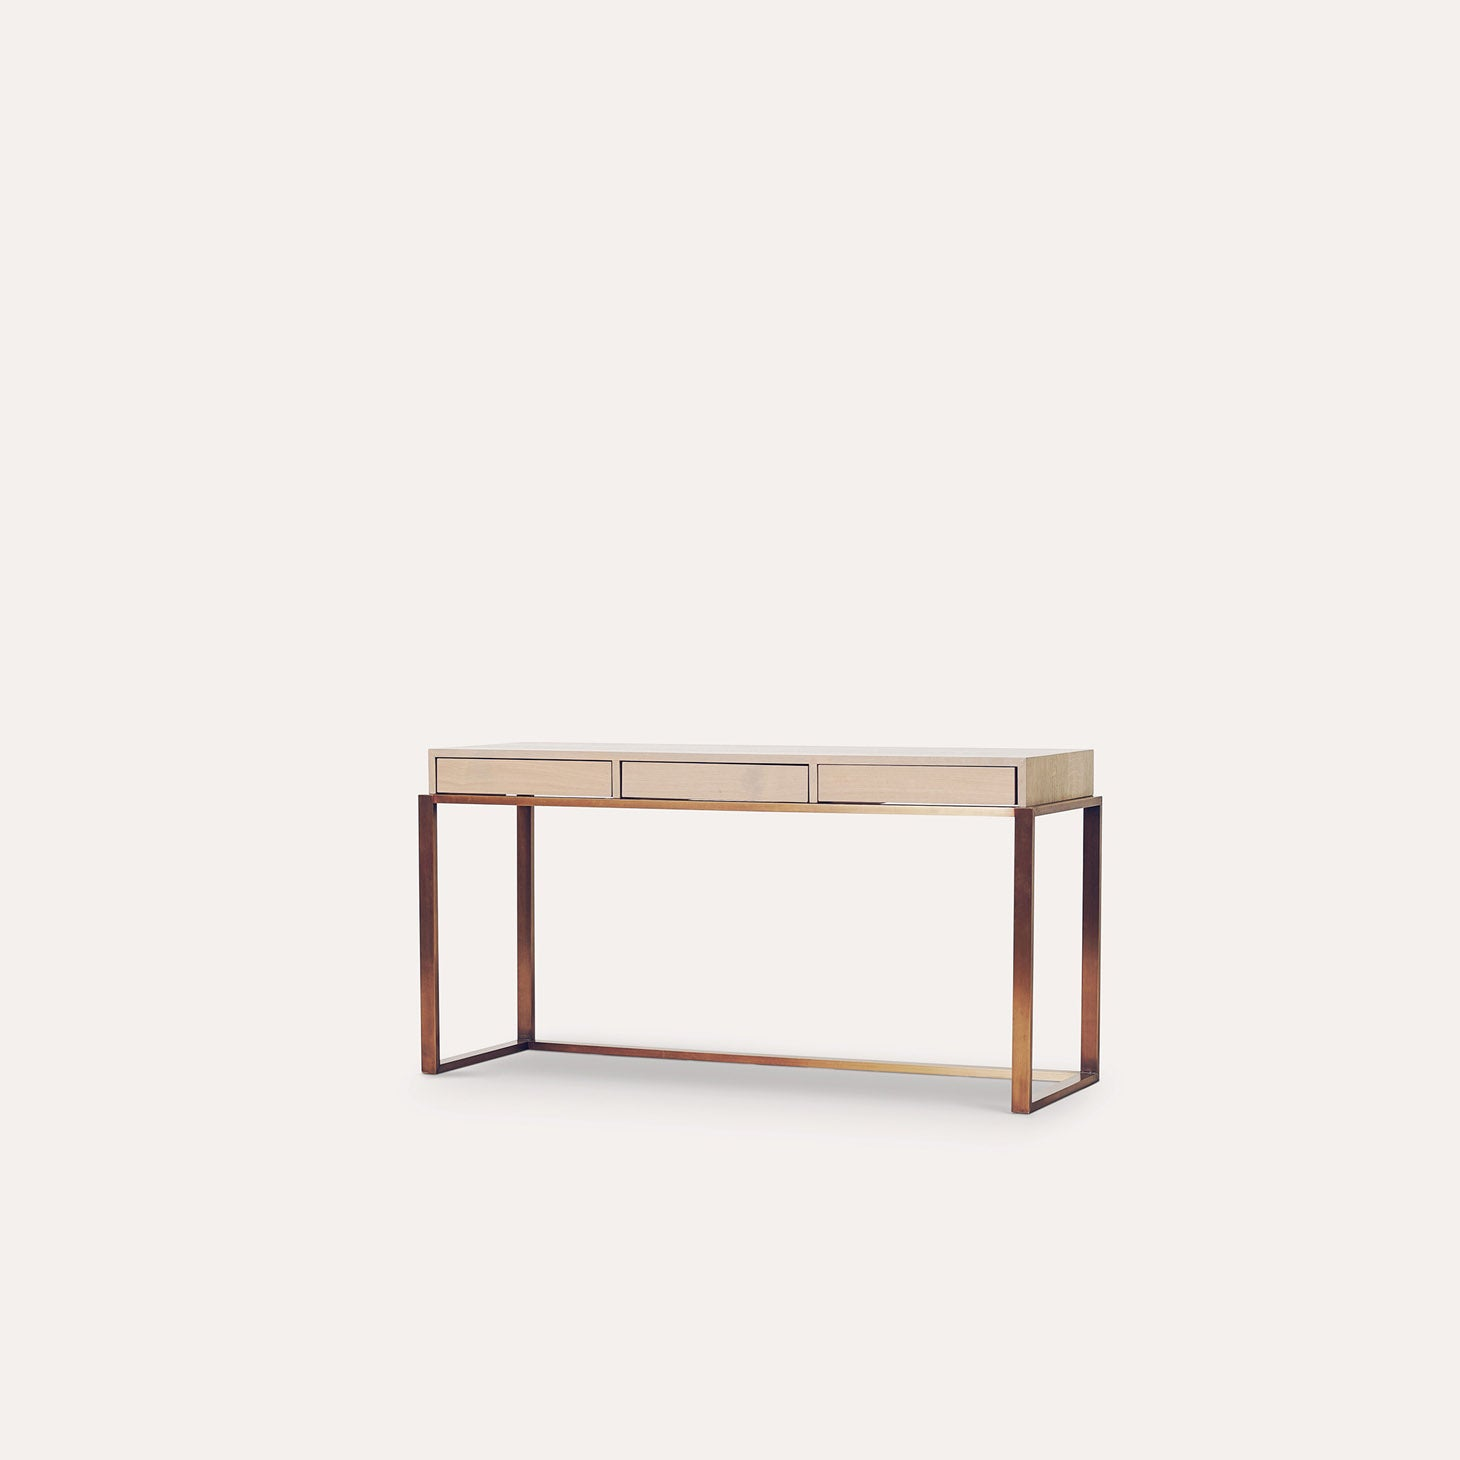 Nota Bene Tables Marlieke Van Rossum Designer Furniture Sku: 416-230-10036